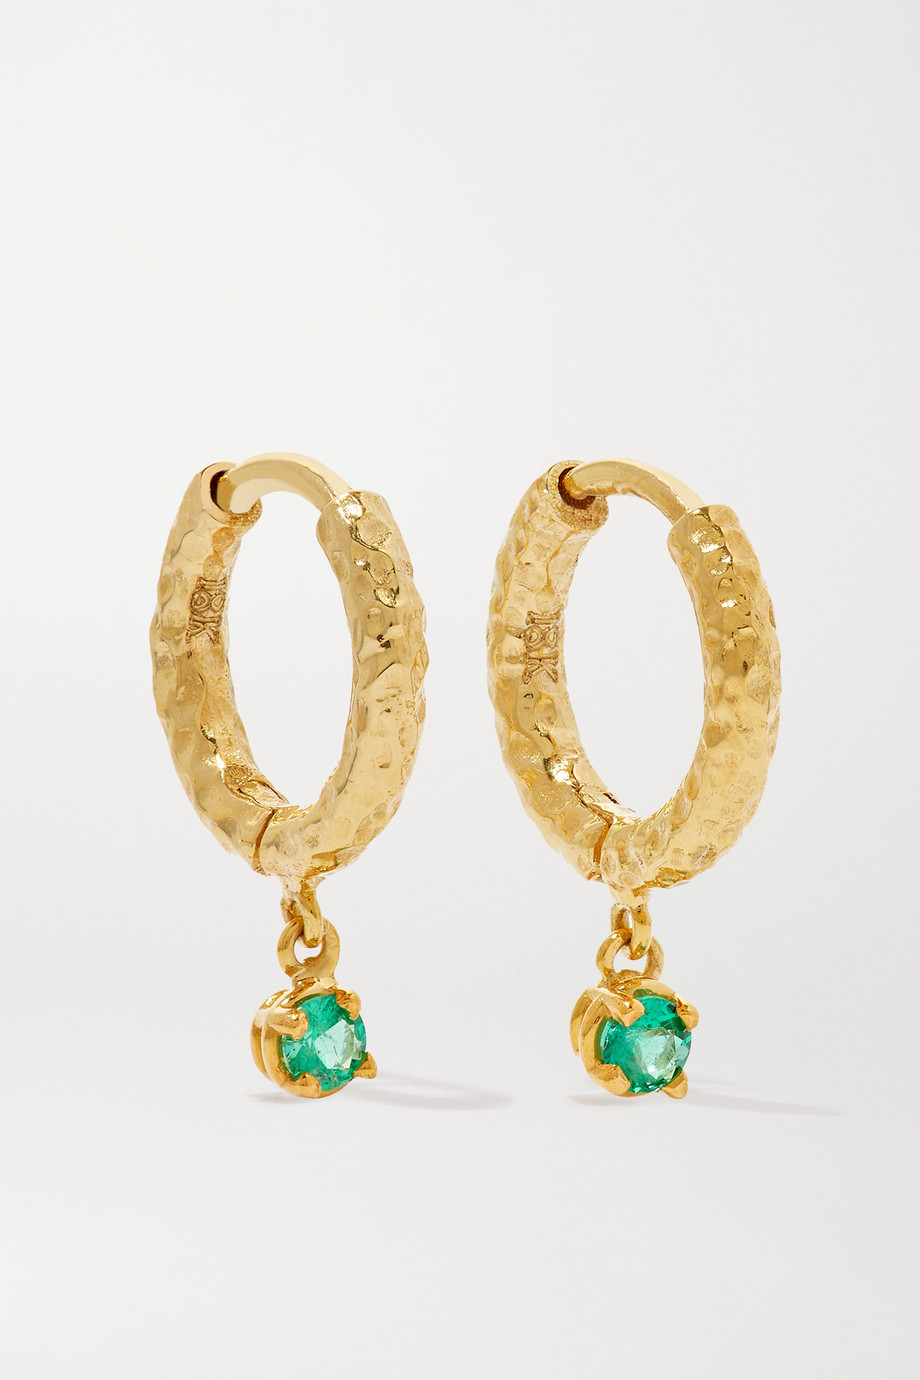 Octavia Elizabeth + NET SUSTAIN Micro Gabby 18-karat gold emerald hoop earrings